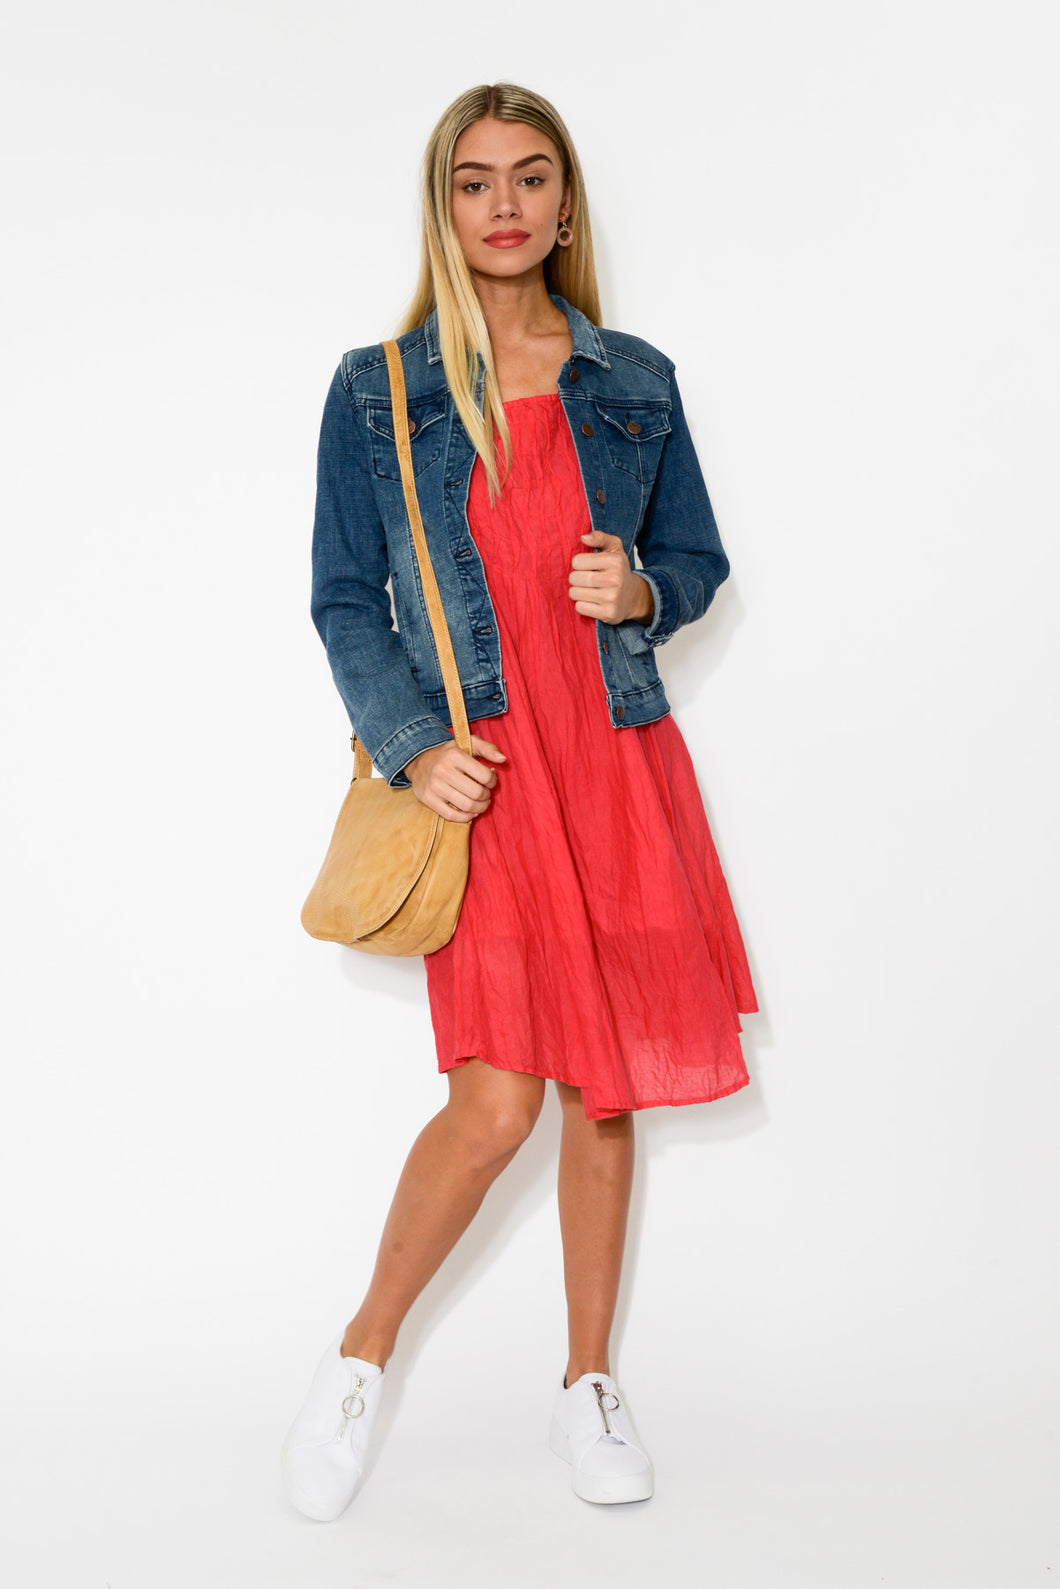 Berry Crinkle Cotton Cap Dress - Blue Bungalow